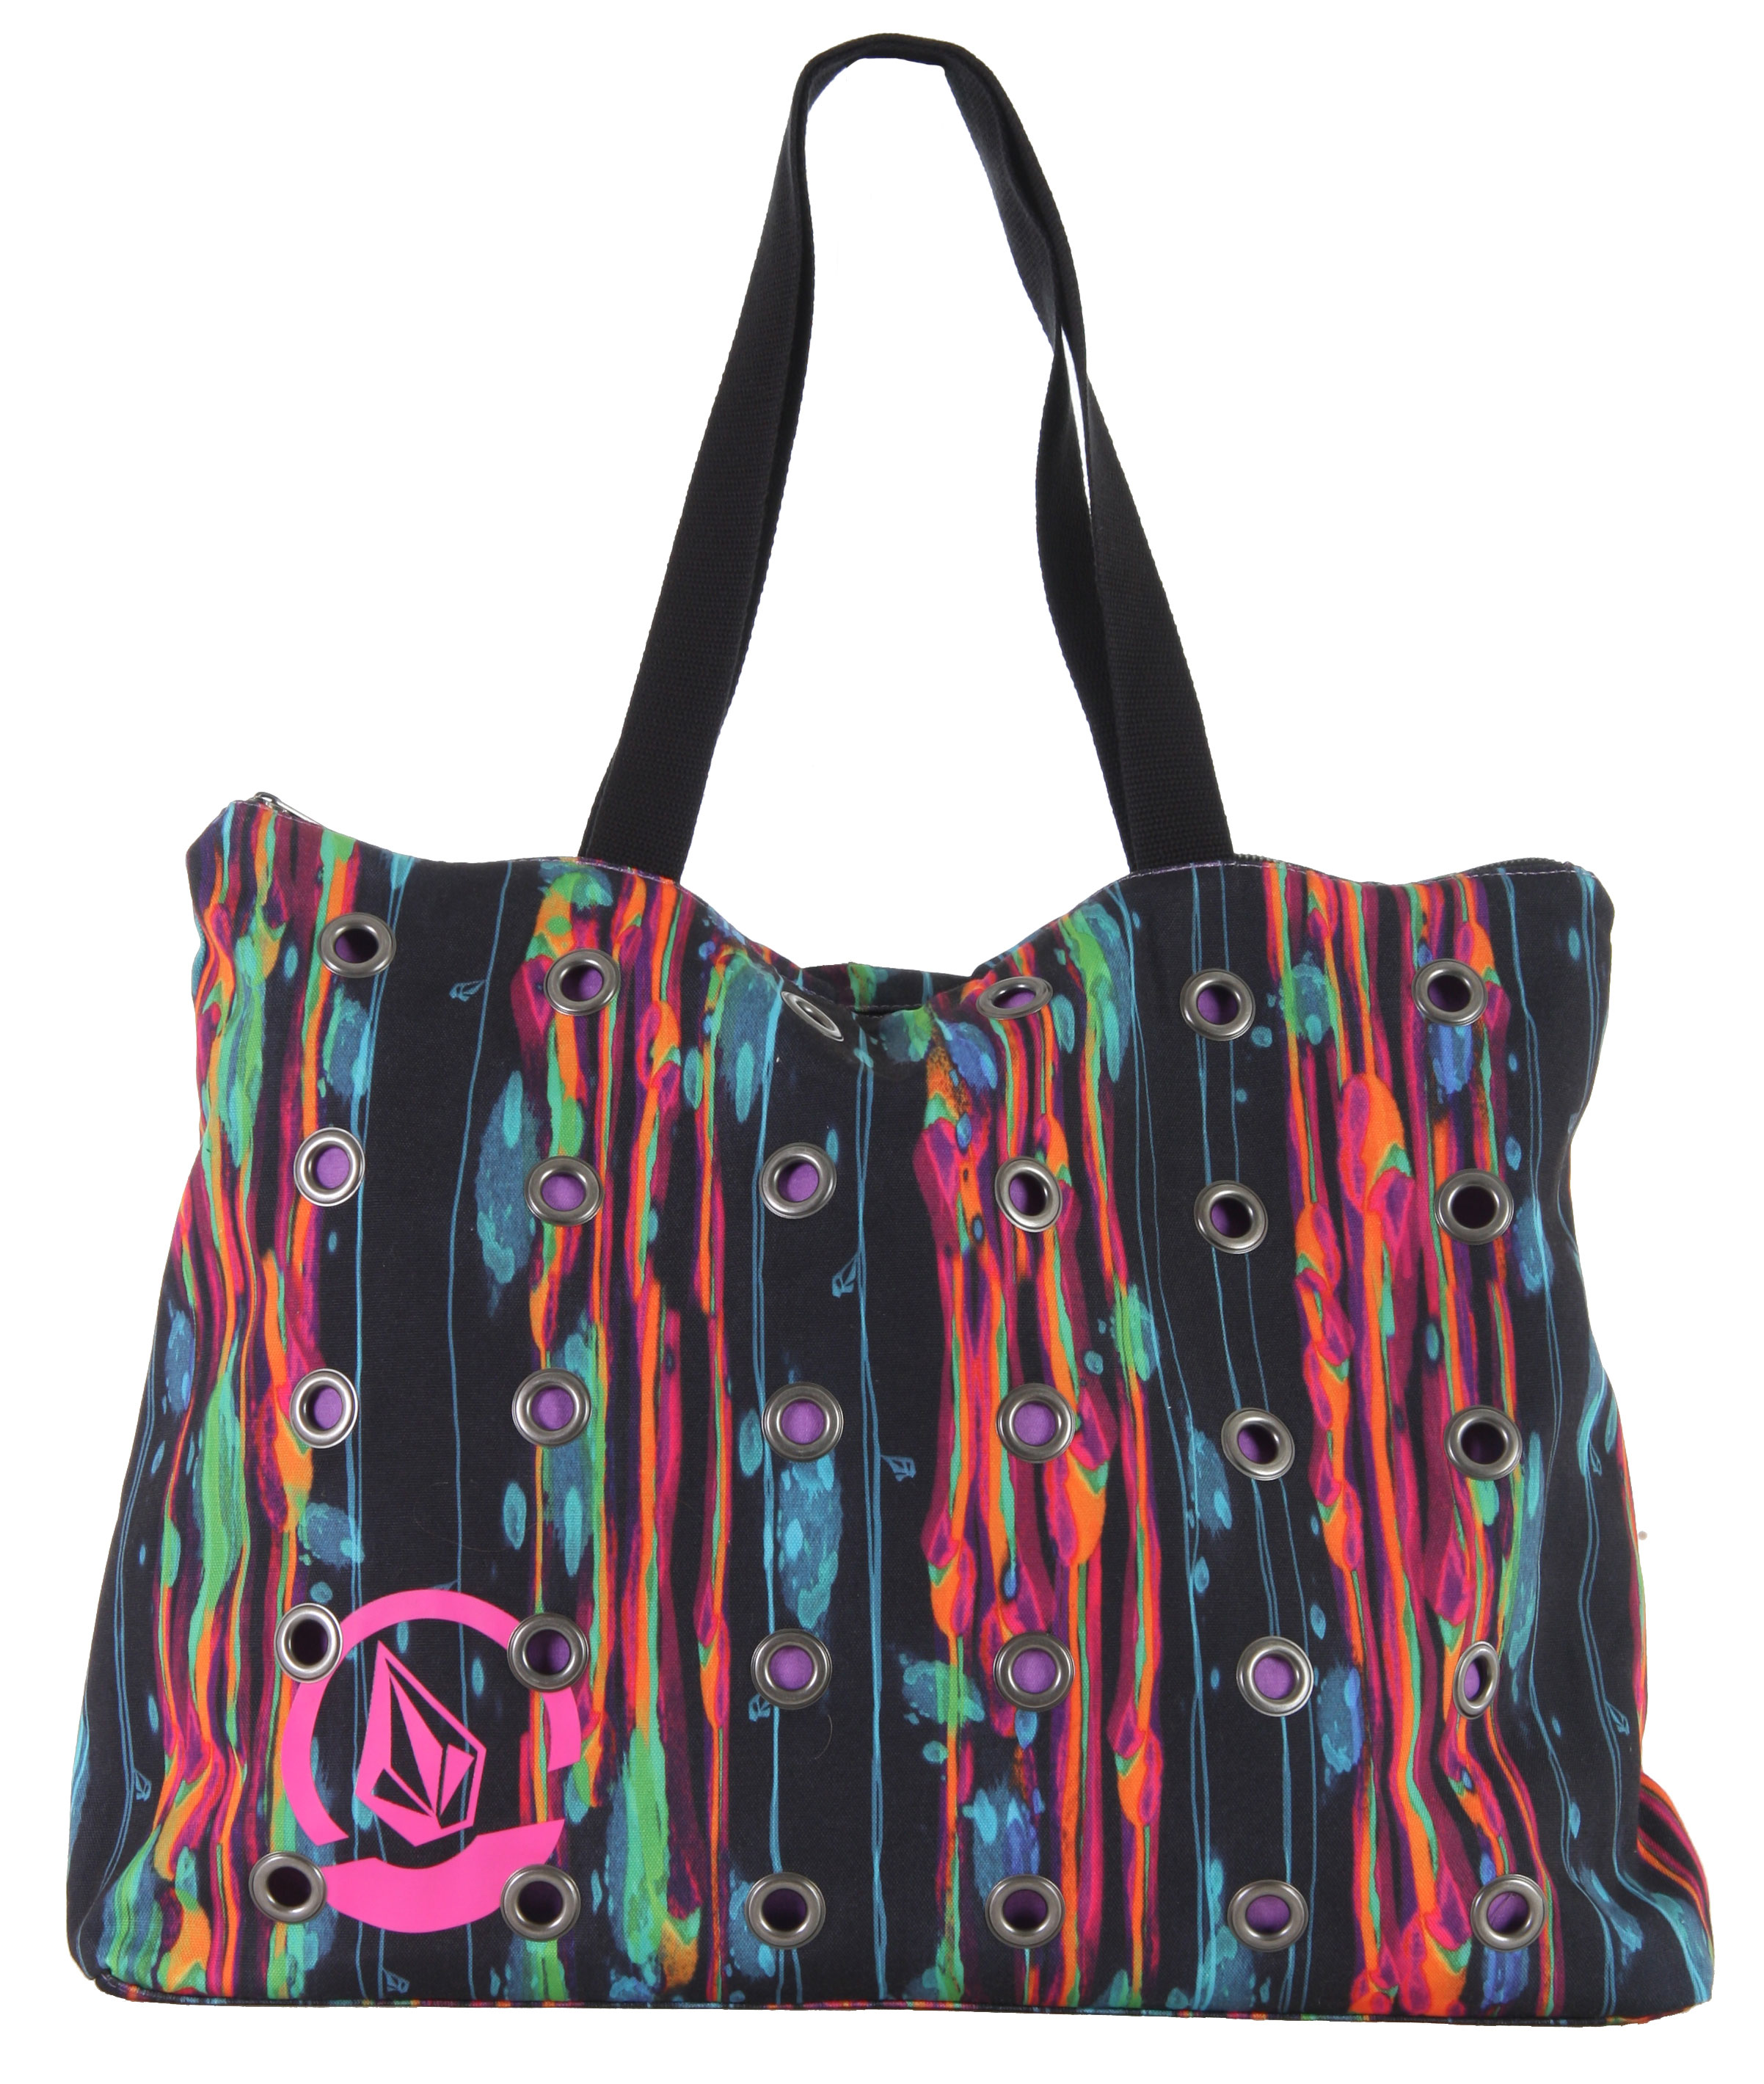 "Surf The Hardbody Beach Tote by Volcom makes it easy to maintain your accessories in style. This tote includes a circle stone high quality screen print with grommet details, and is made of 100% soft spun polyester. The Hardbody Beach Tote features a top zipper closure, as well as an interior zipper pocket, ensuring that your clothing and accessories stay organized and separate. This stylish bag has measurements of 20""W X 16""H X 5""D, which means this tote by Volcom is not only attractive and functional, but spacious as well.Key Features of the Volcom Hardbody Beach Tote: 100% Polyester. Soft Spun Polyester Beach Tote With Circle Stone Screen Print And Grommet Details. Zipper Top Closure And Interior Zipper Pocket. 20""W X 16""H X 5""D At Base. - $24.95"